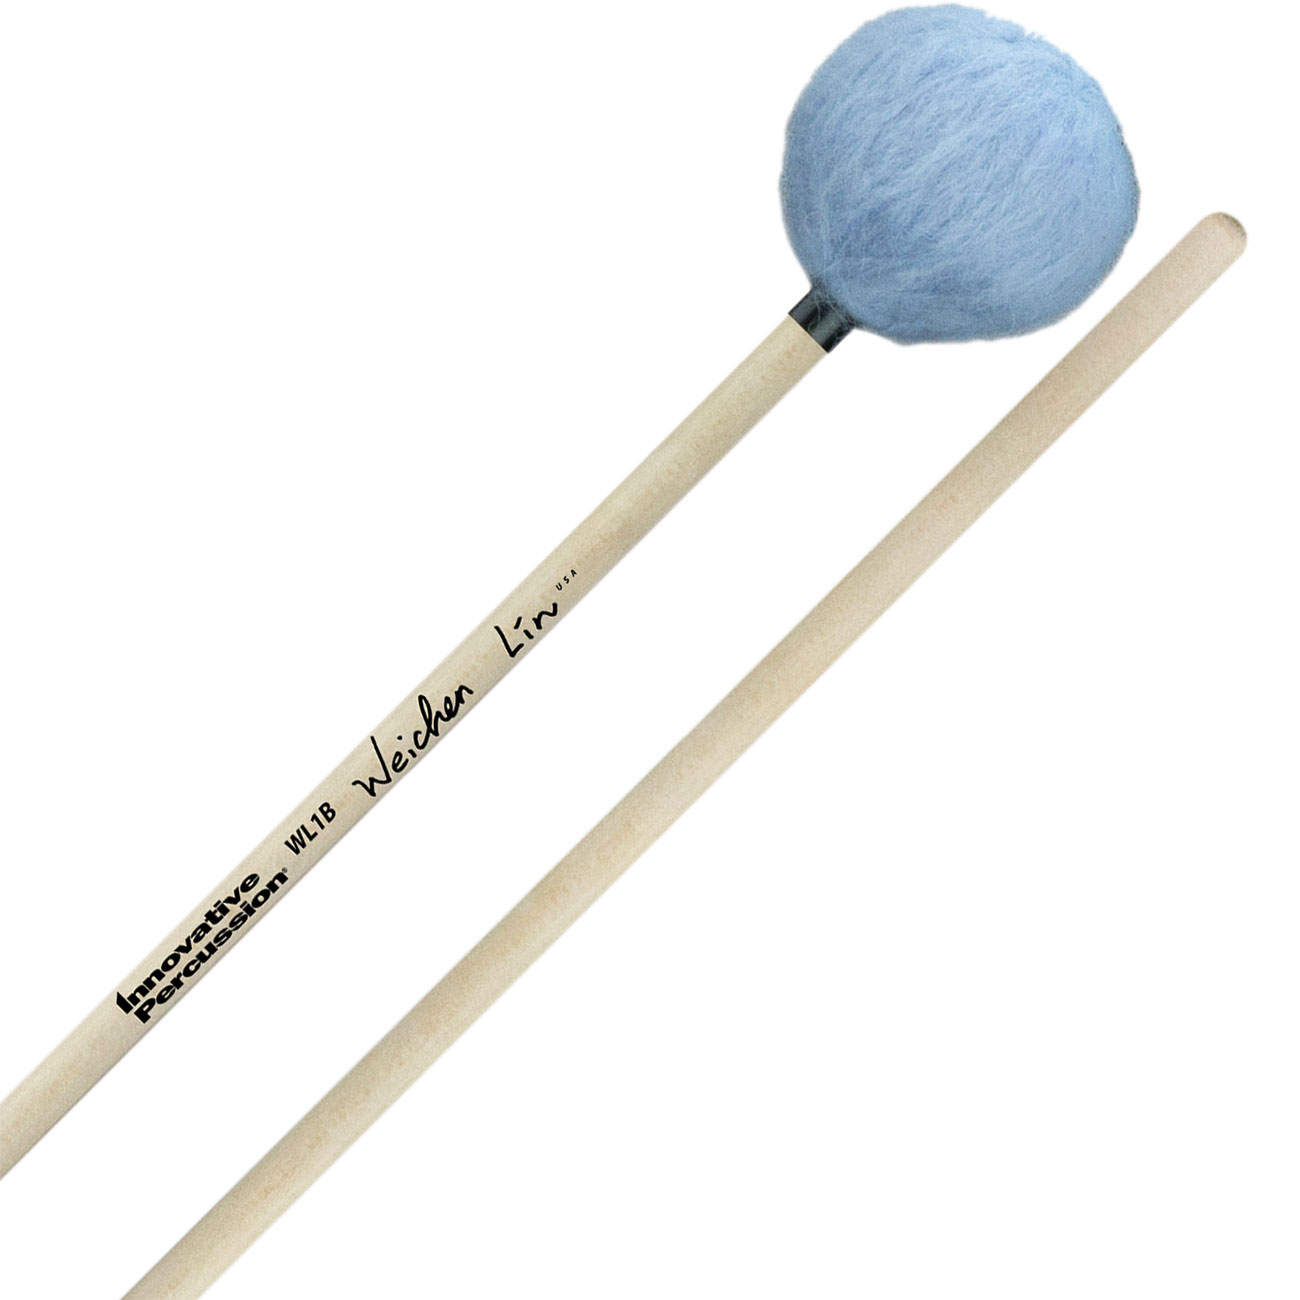 Innovative Percussion Wei-Chen Lin Signature Bass Marimba Mallets with Birch Handles